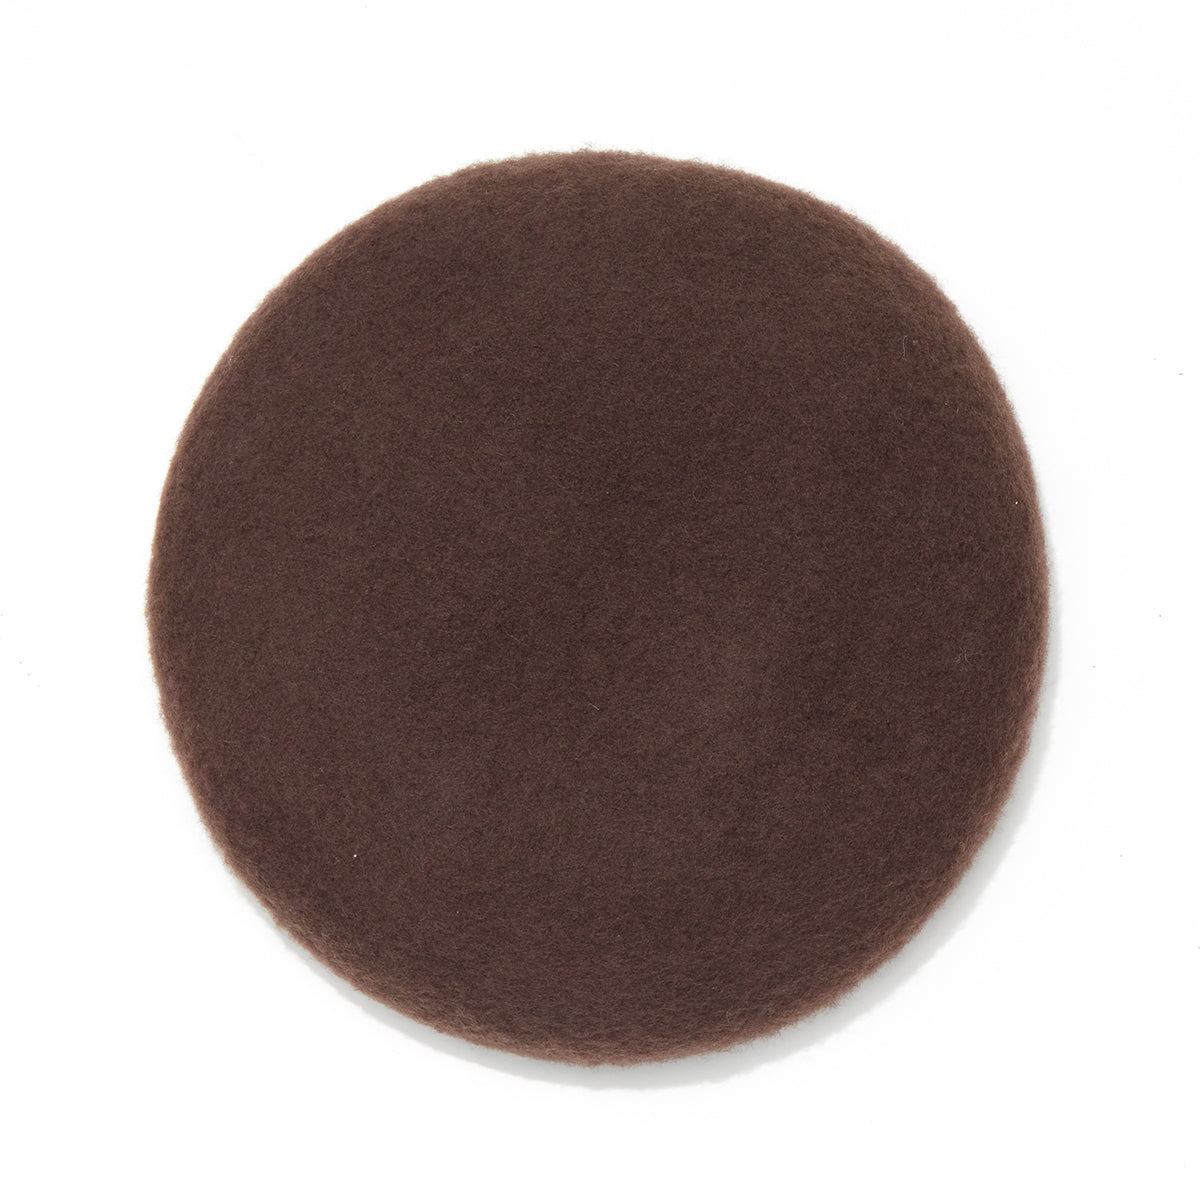 NAPPING WOOL BERET / BROWN (21A-NSA-AC-01)